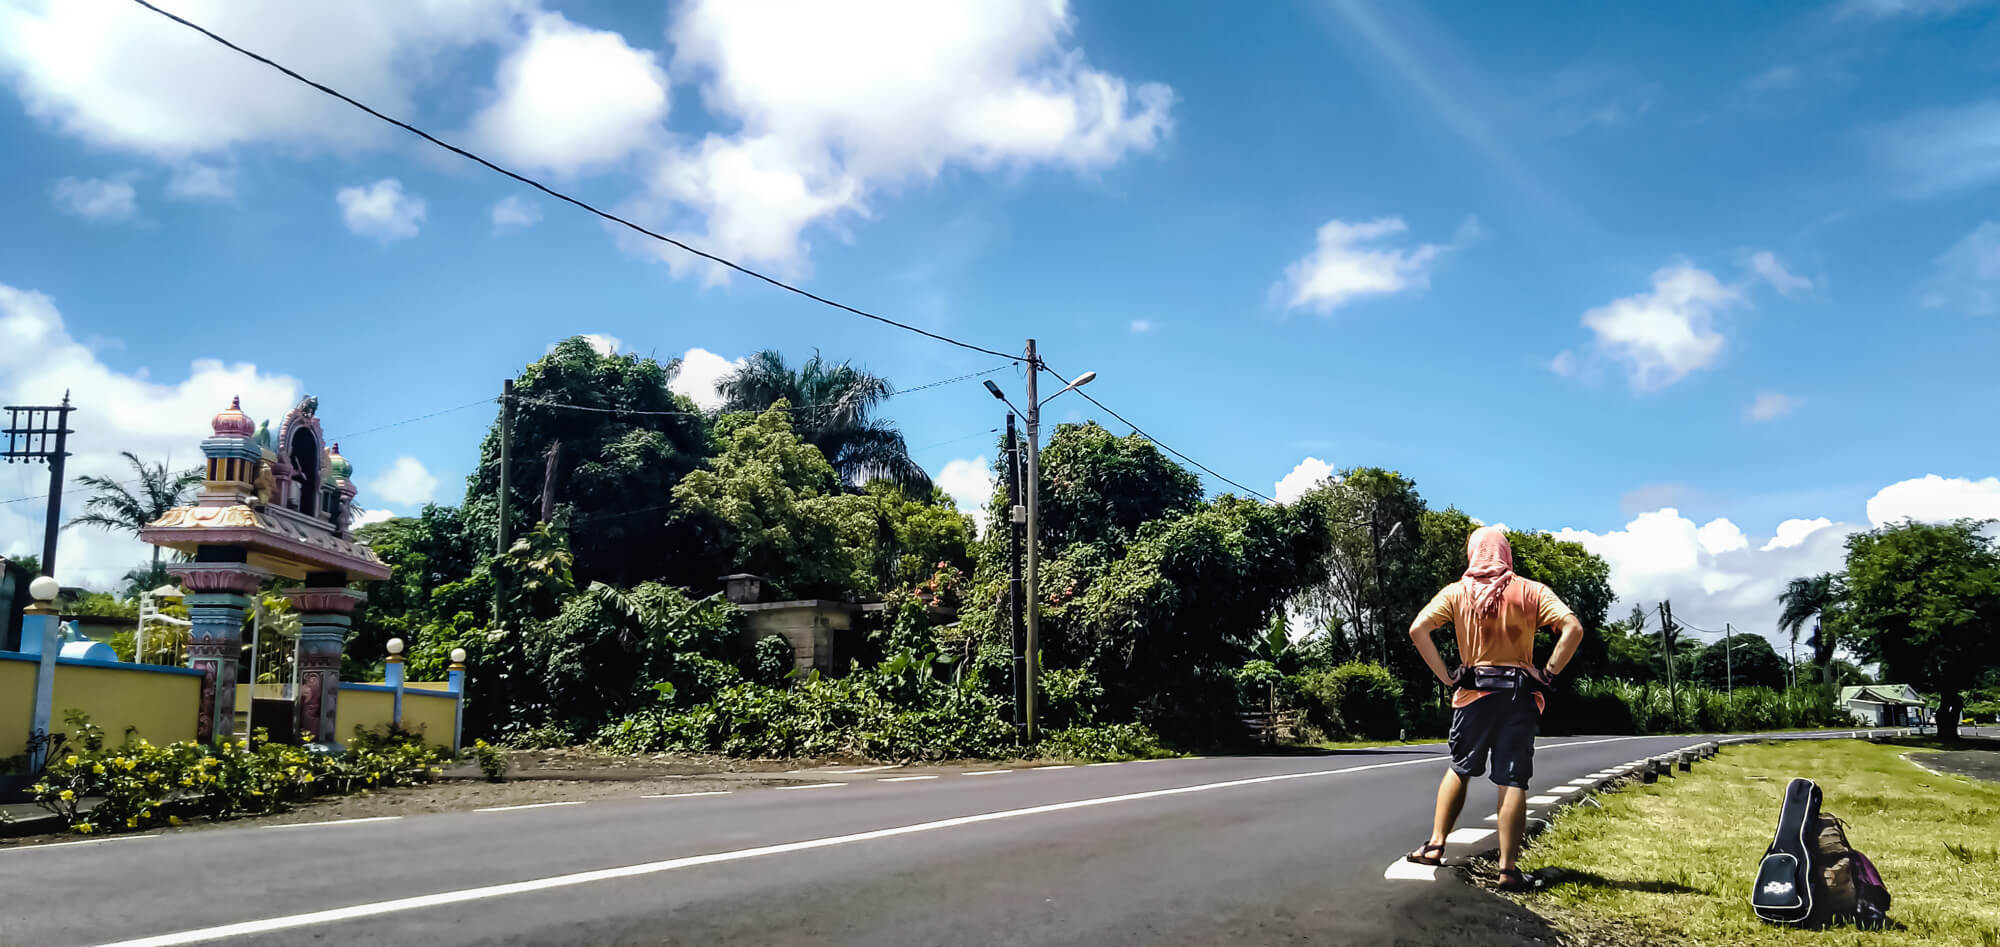 Traveller hitchhiking in Mauritius during his bucket list trip